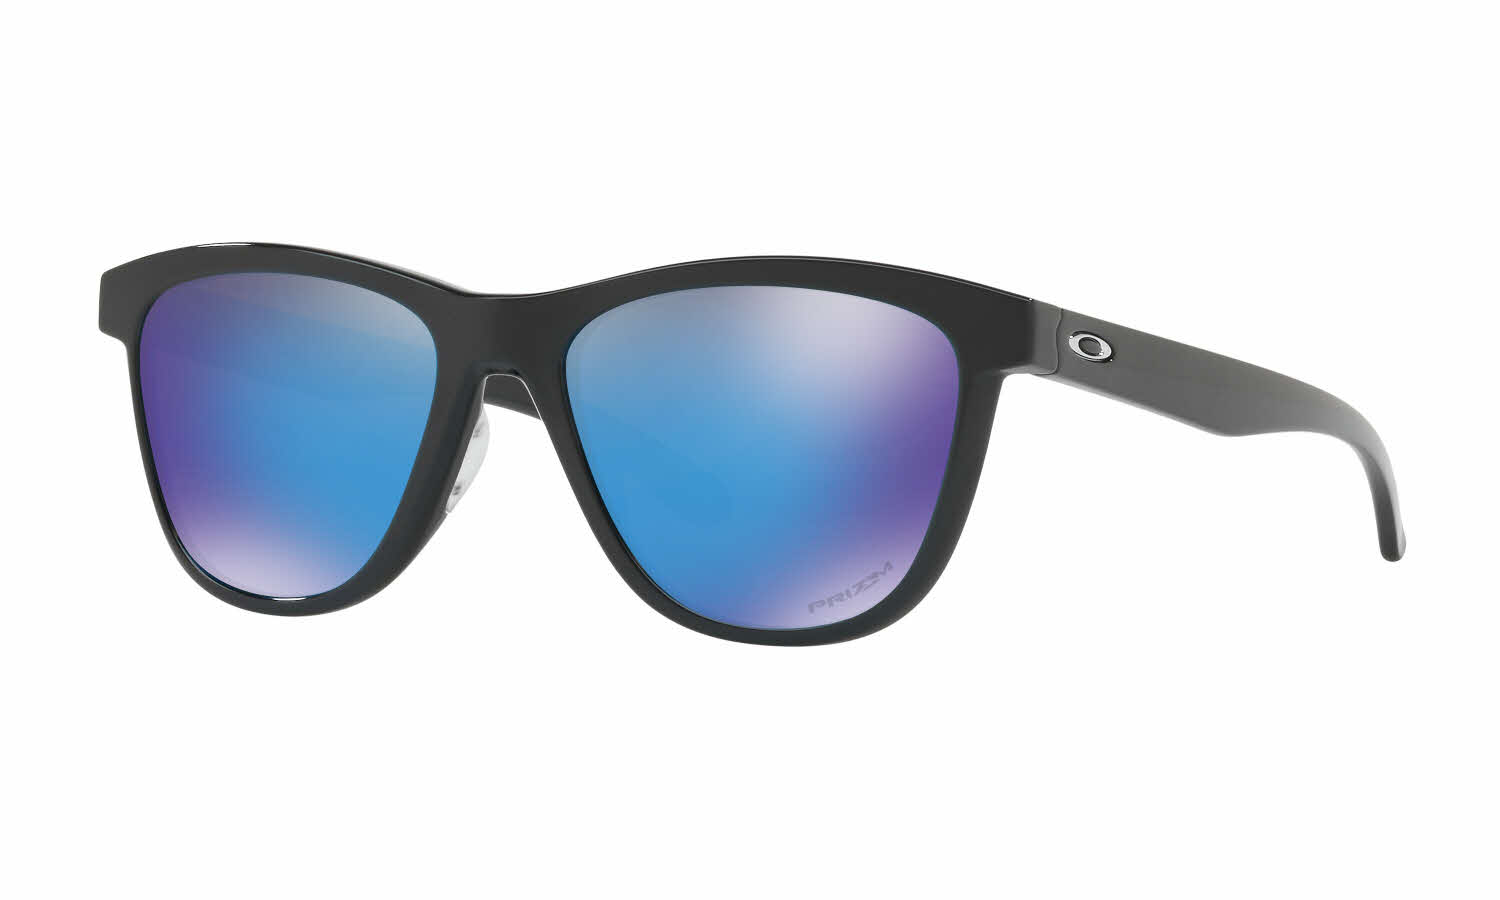 78b022ee96 Oakley Women Moonlighter Sunglasses